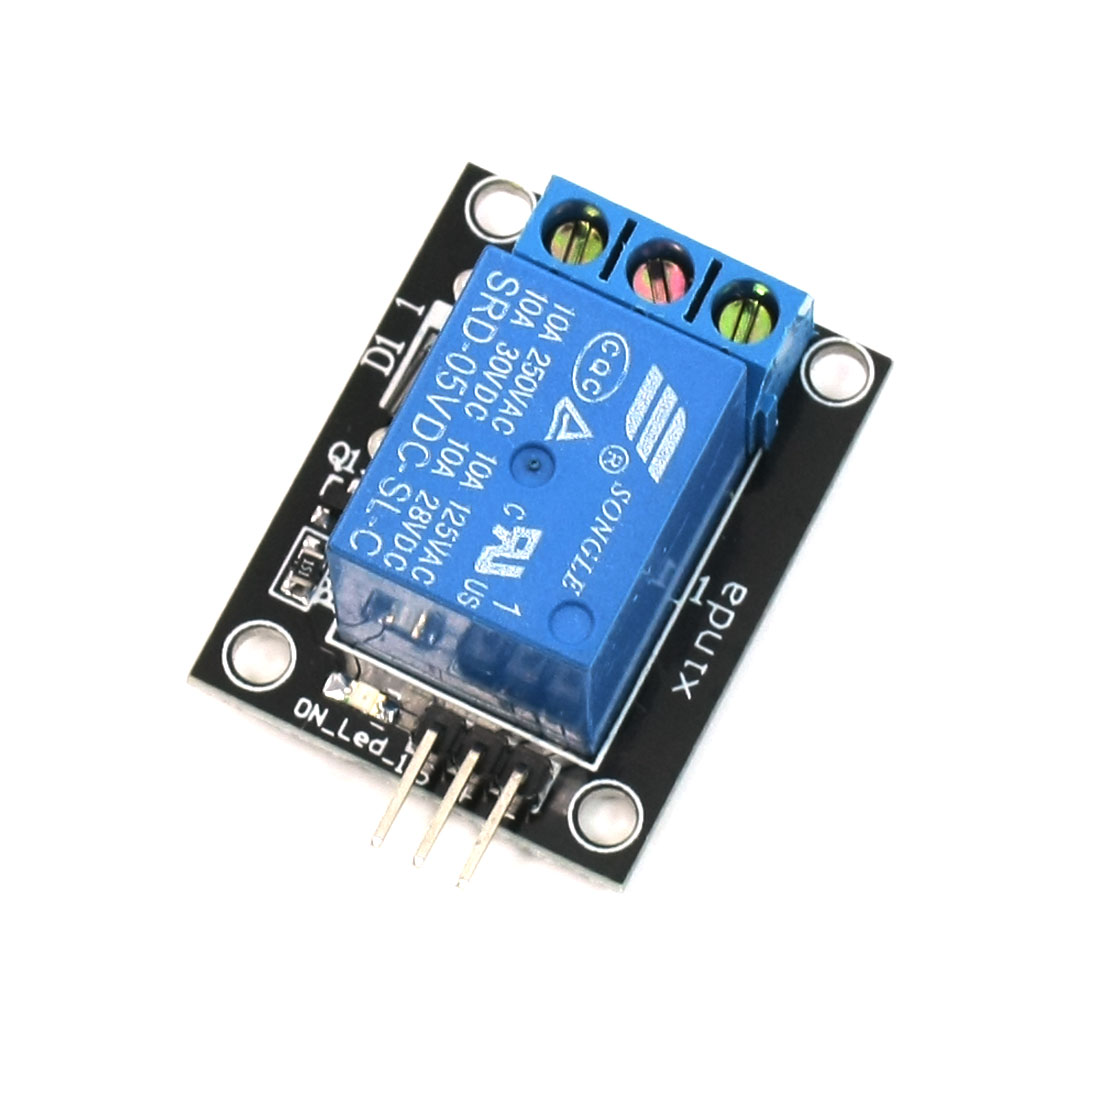 DC 5V Coil Relay Module for SCM Development/Home Appliance Control for Arduino